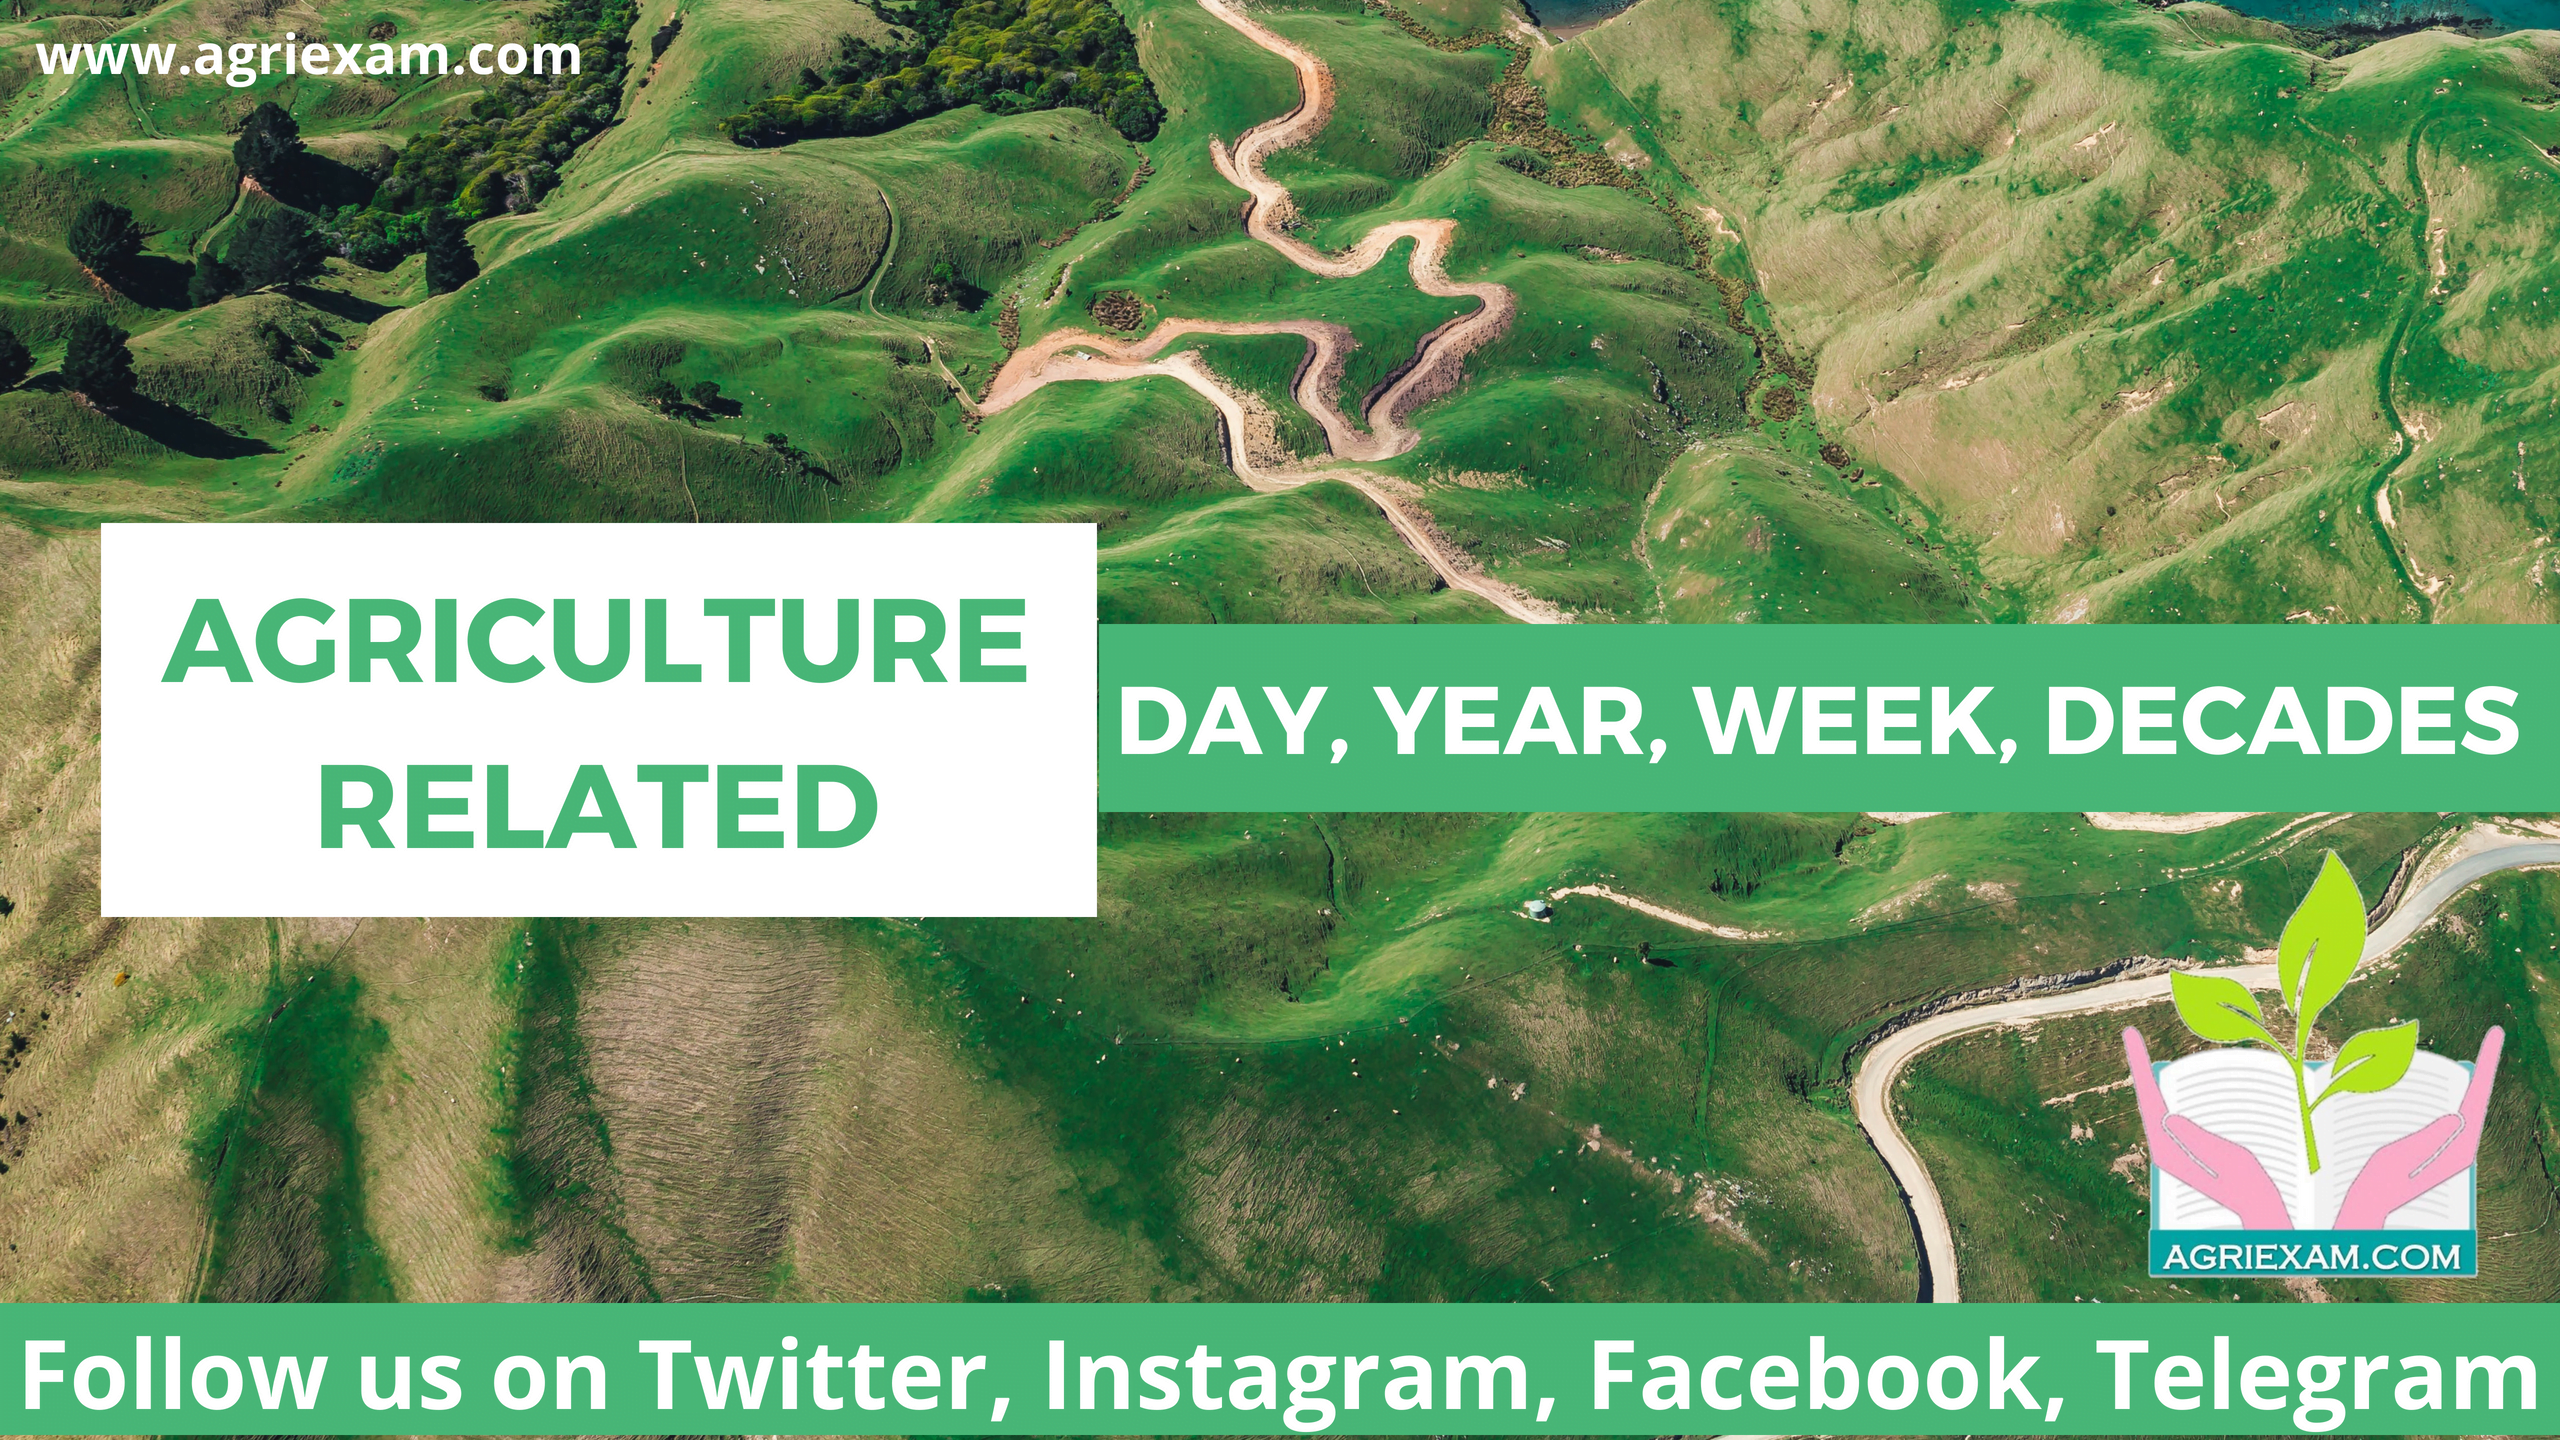 Agriculture Day Week Years Decades